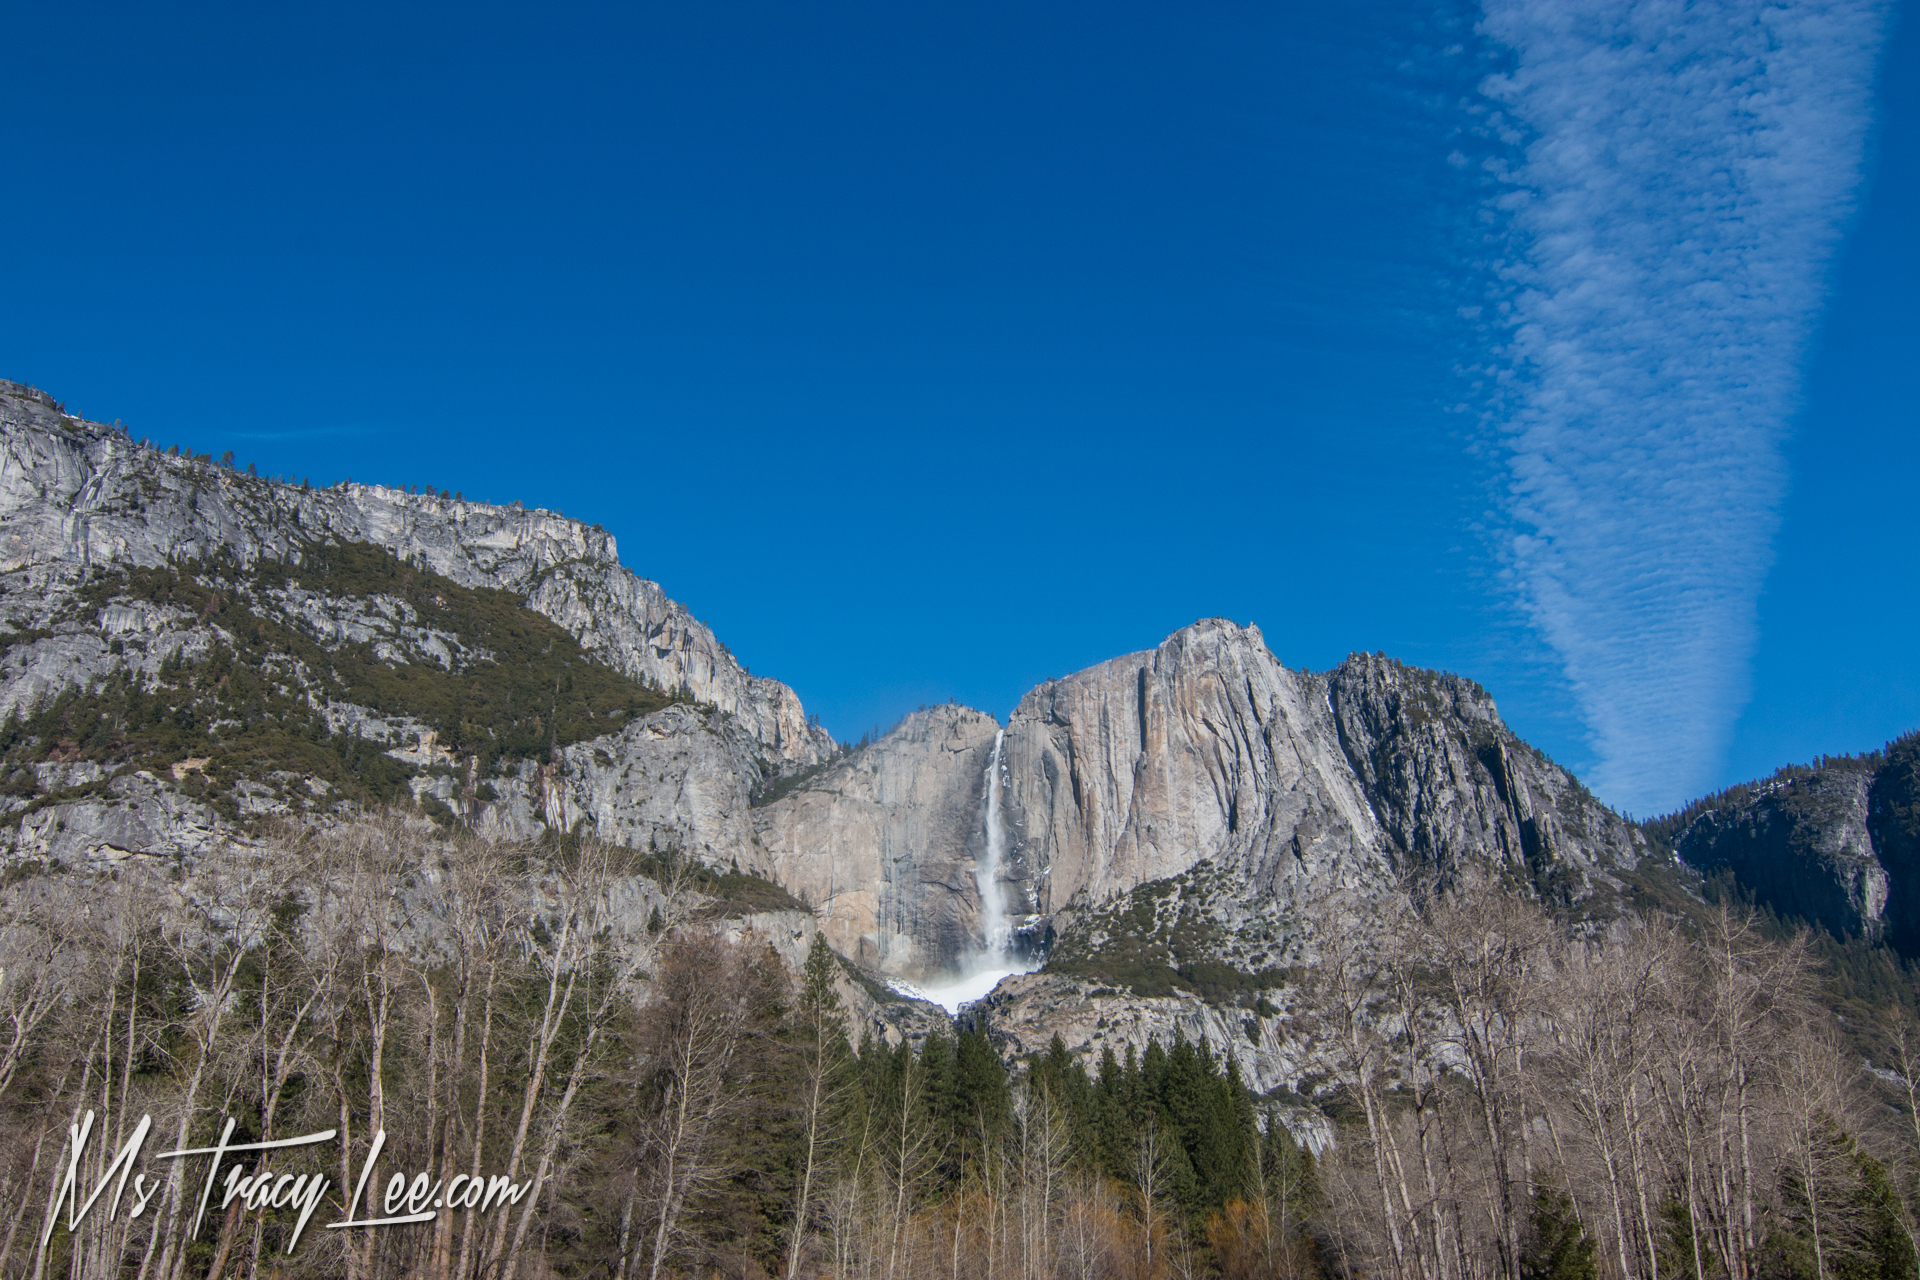 Our 24 Hour Yosemite Firefall Adventure